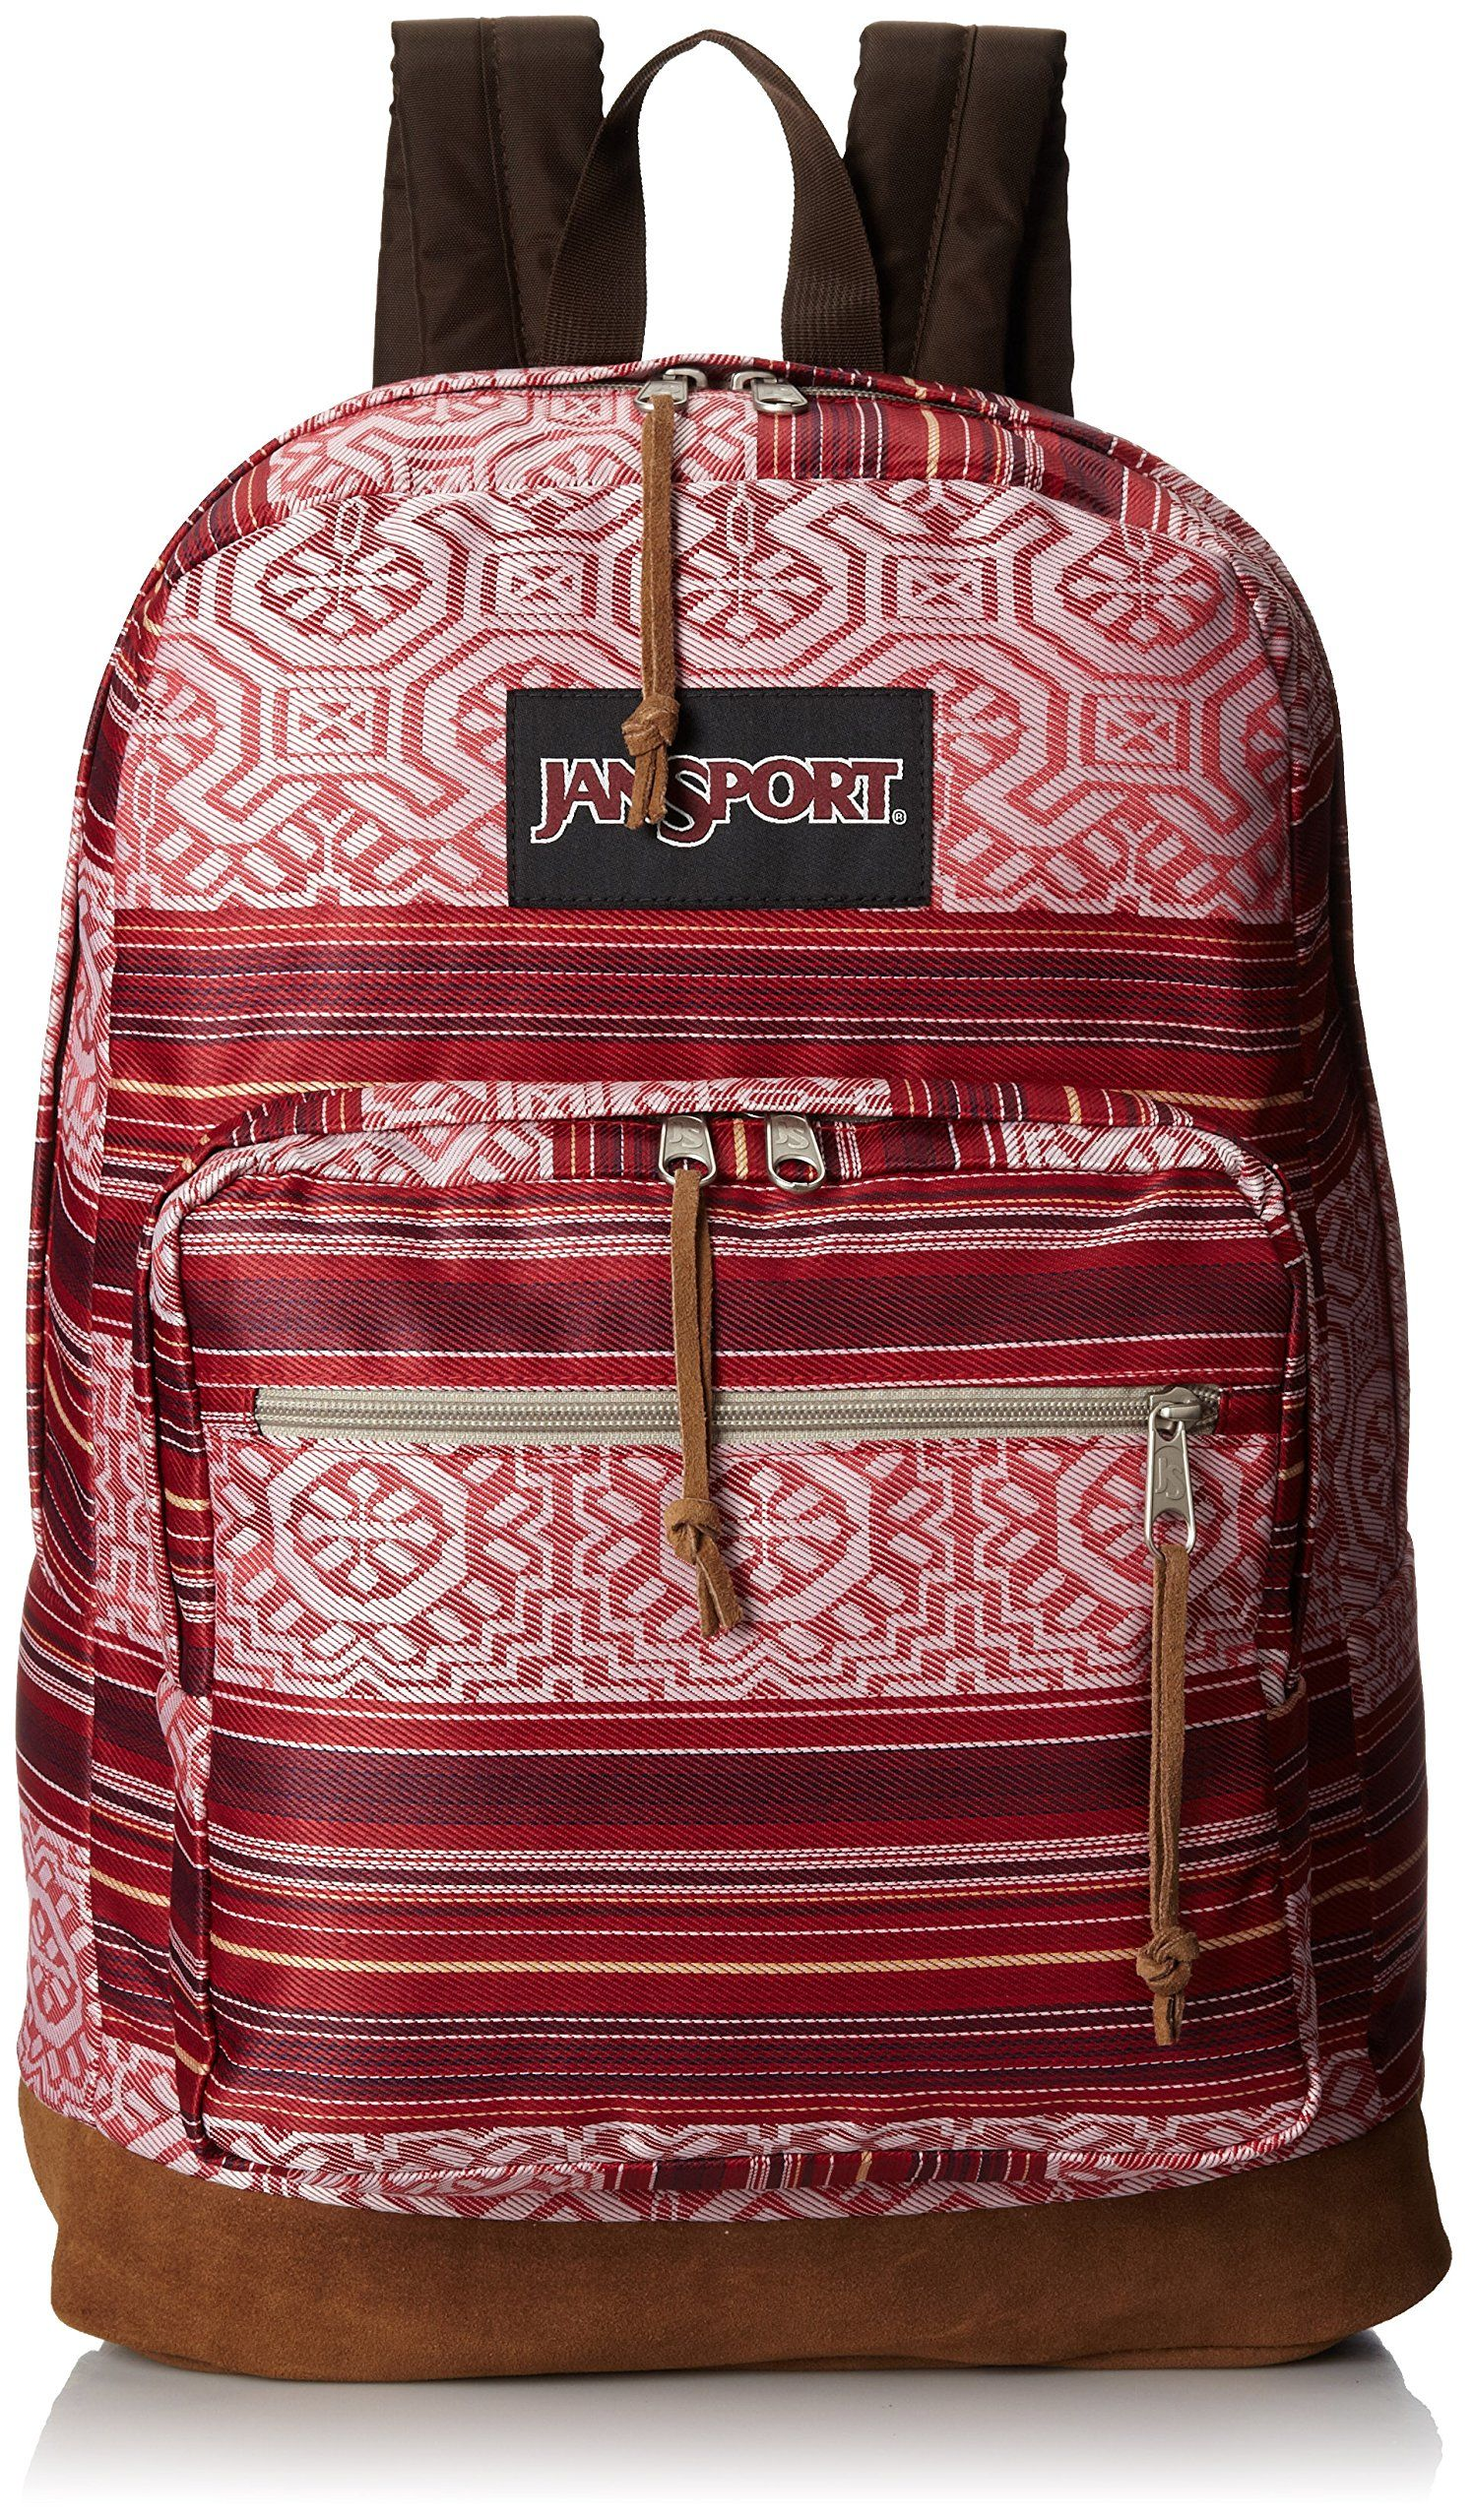 9abbc77ad9 Red Jansport Backpack Amazon - Ken Chad Consulting Ltd